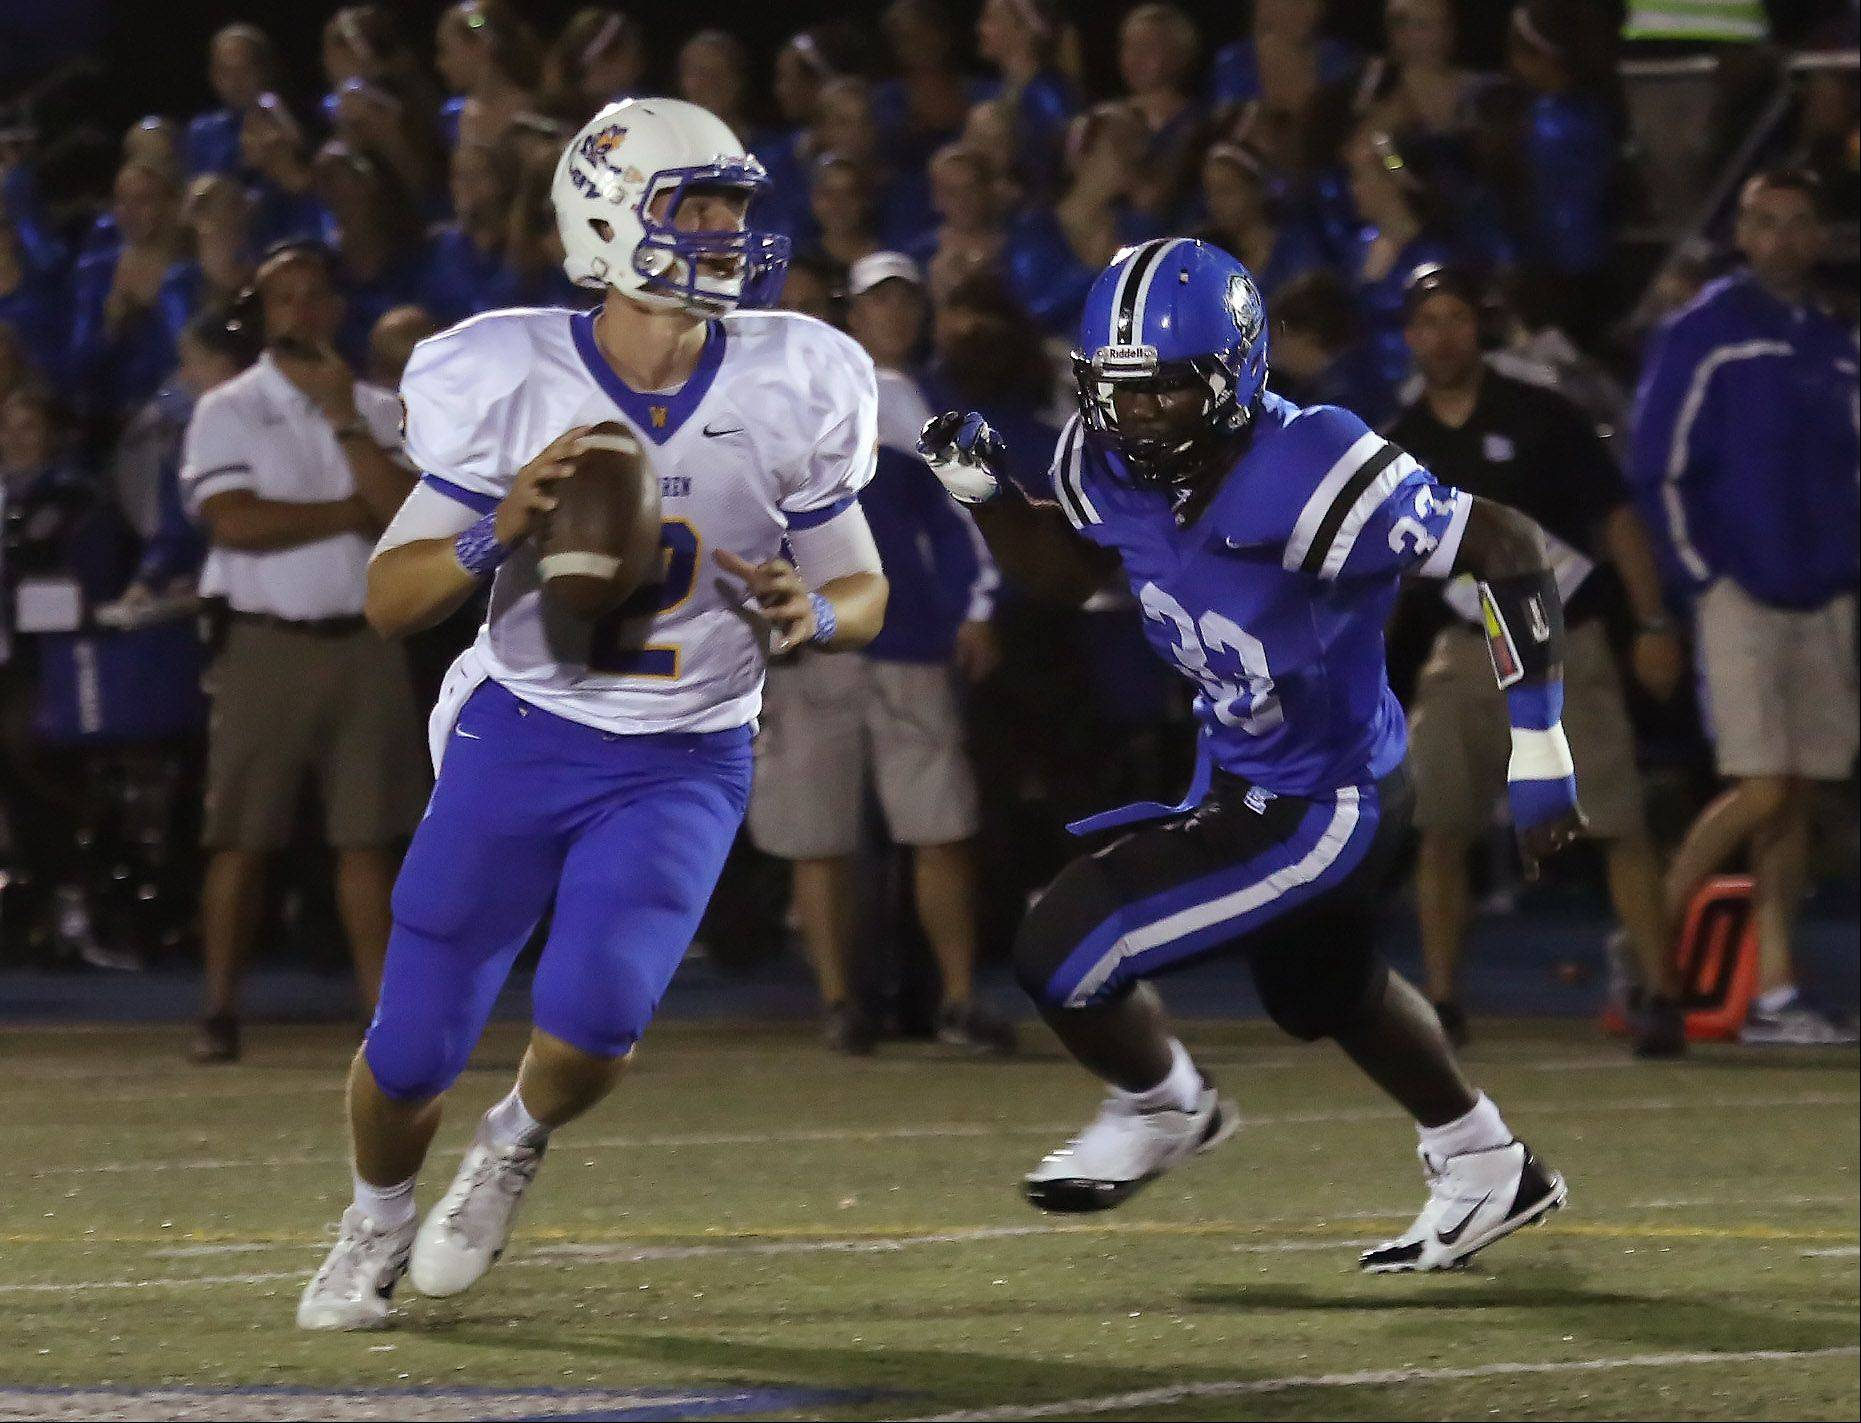 Warren quarterback Andrew Nickell is chased down by Lake Zurich defensive lineman Dominic McNeil .